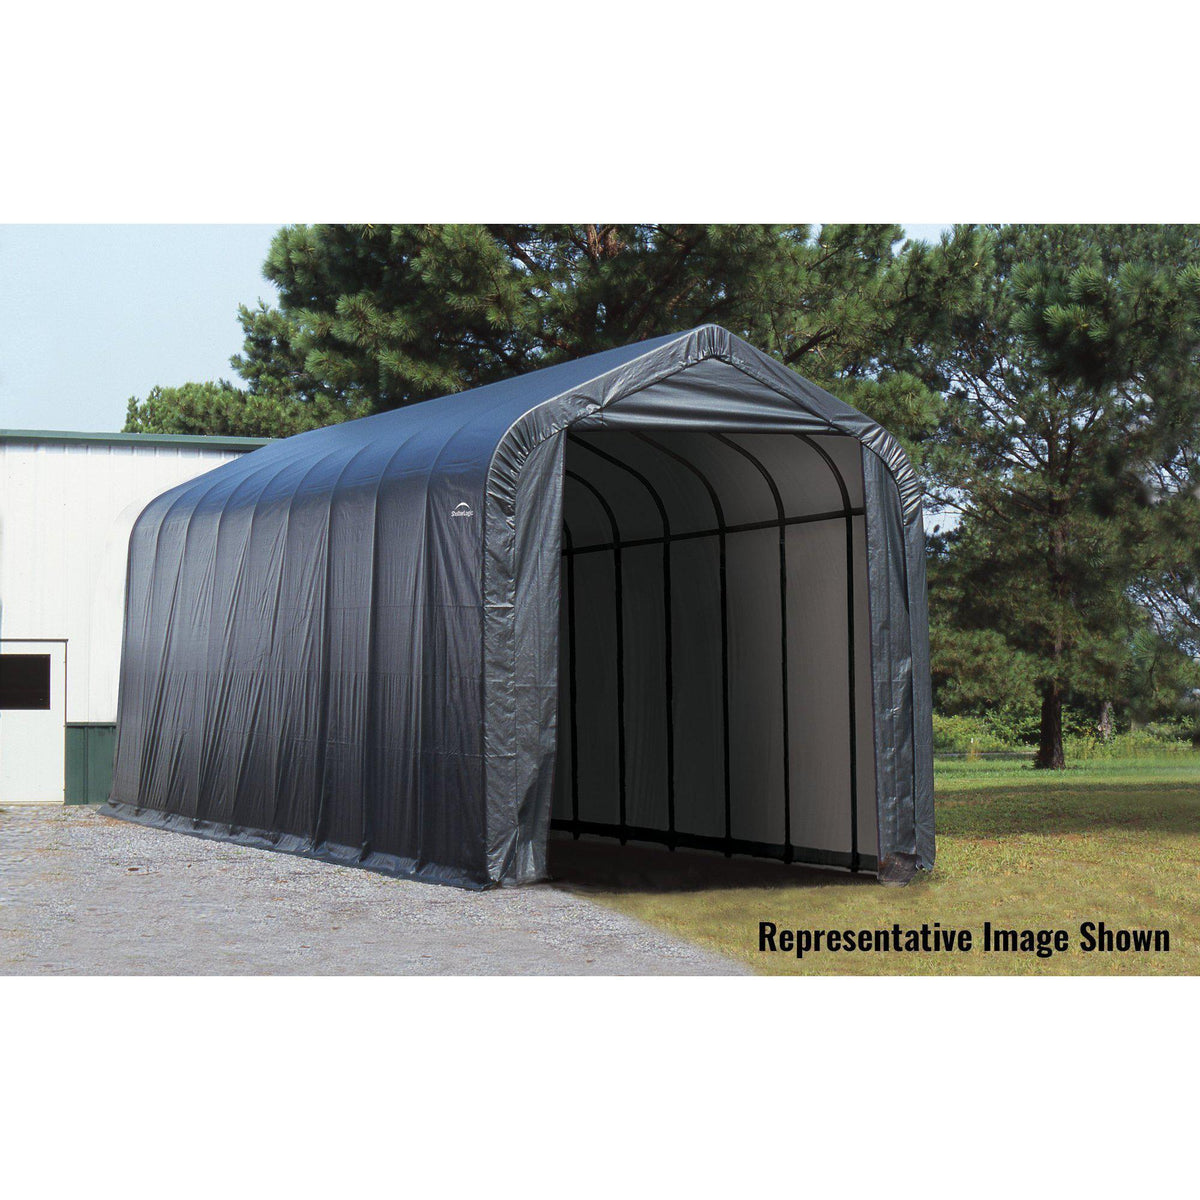 ShelterLogic Garage 15 x 28 x 12 Peak Standard Grey